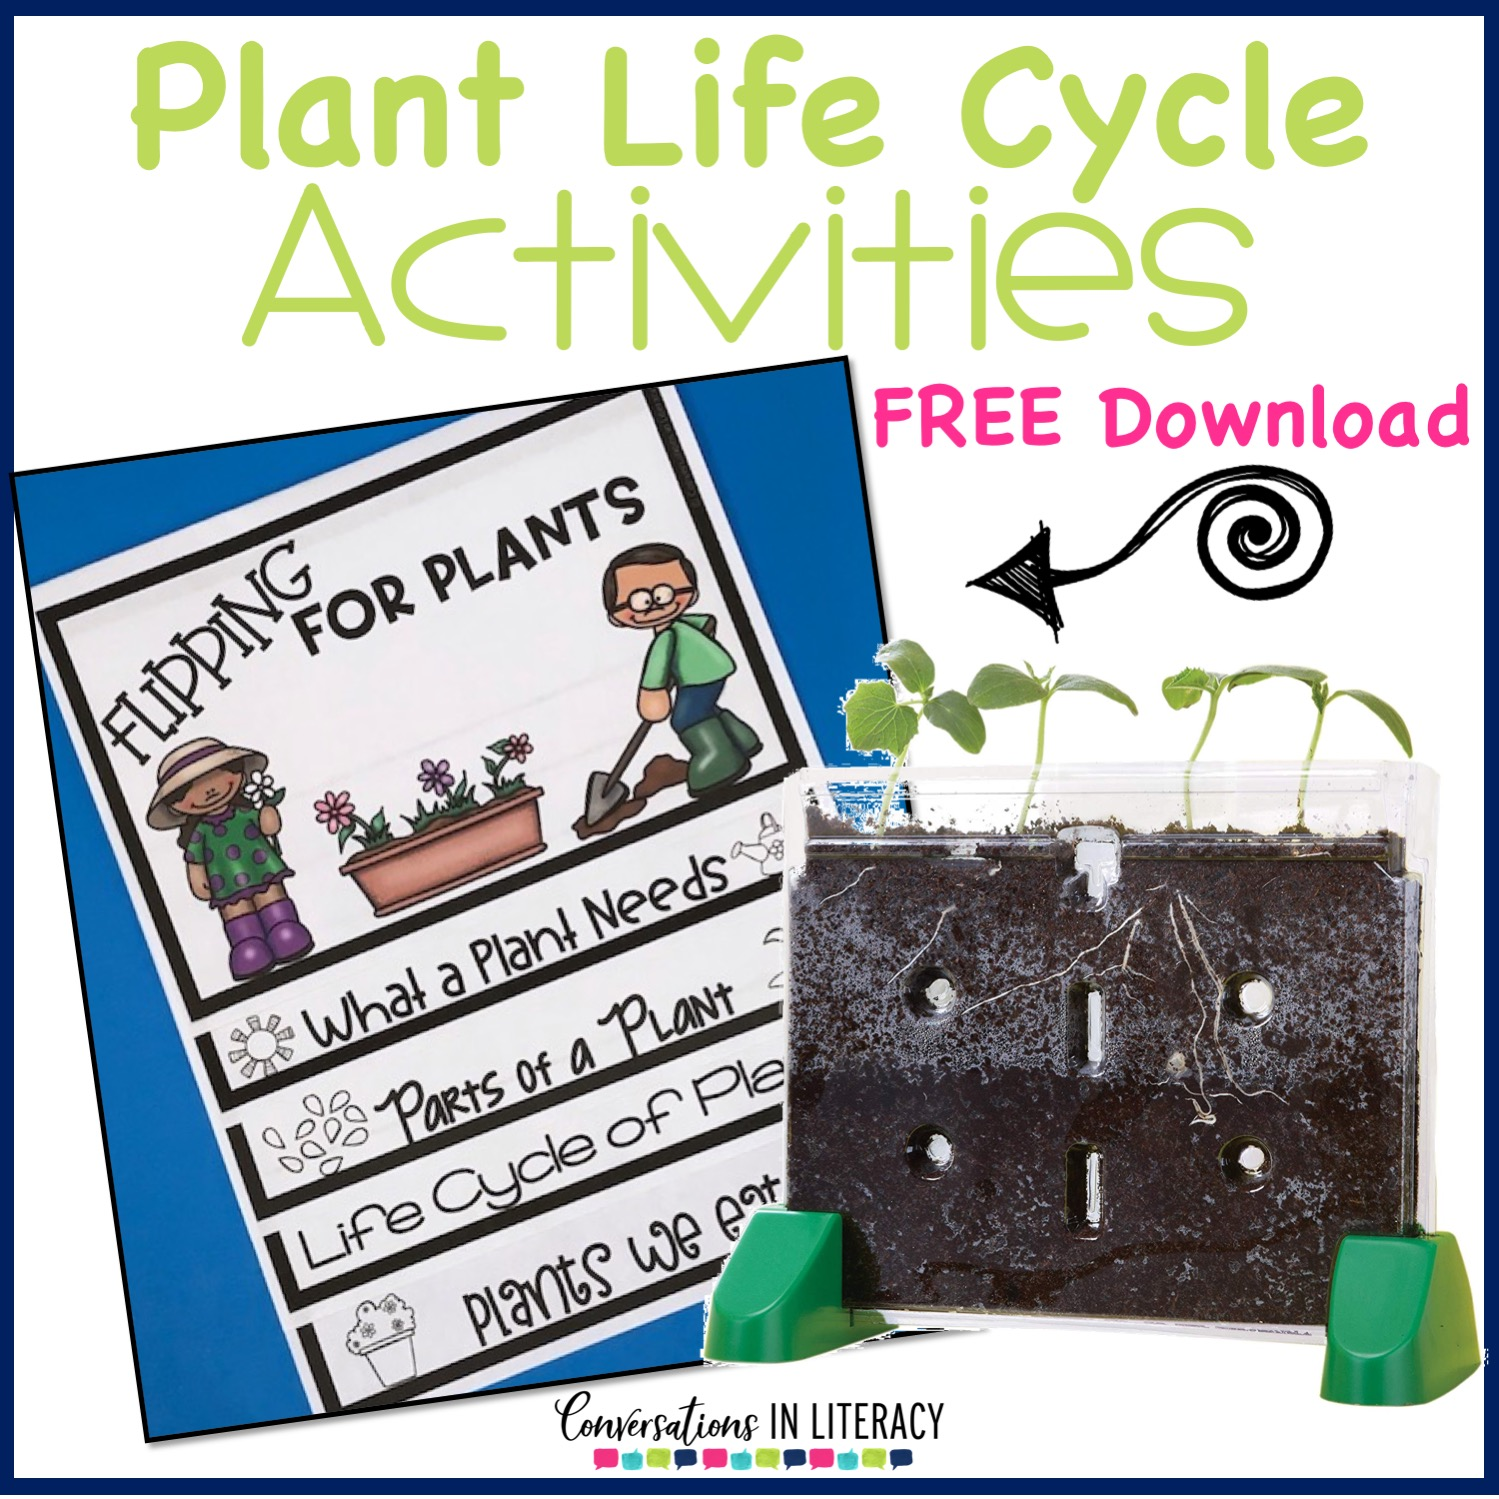 photo regarding Plant Life Cycle Printable identified as Plant Existence Cycle Things to do - Discussions within Literacy